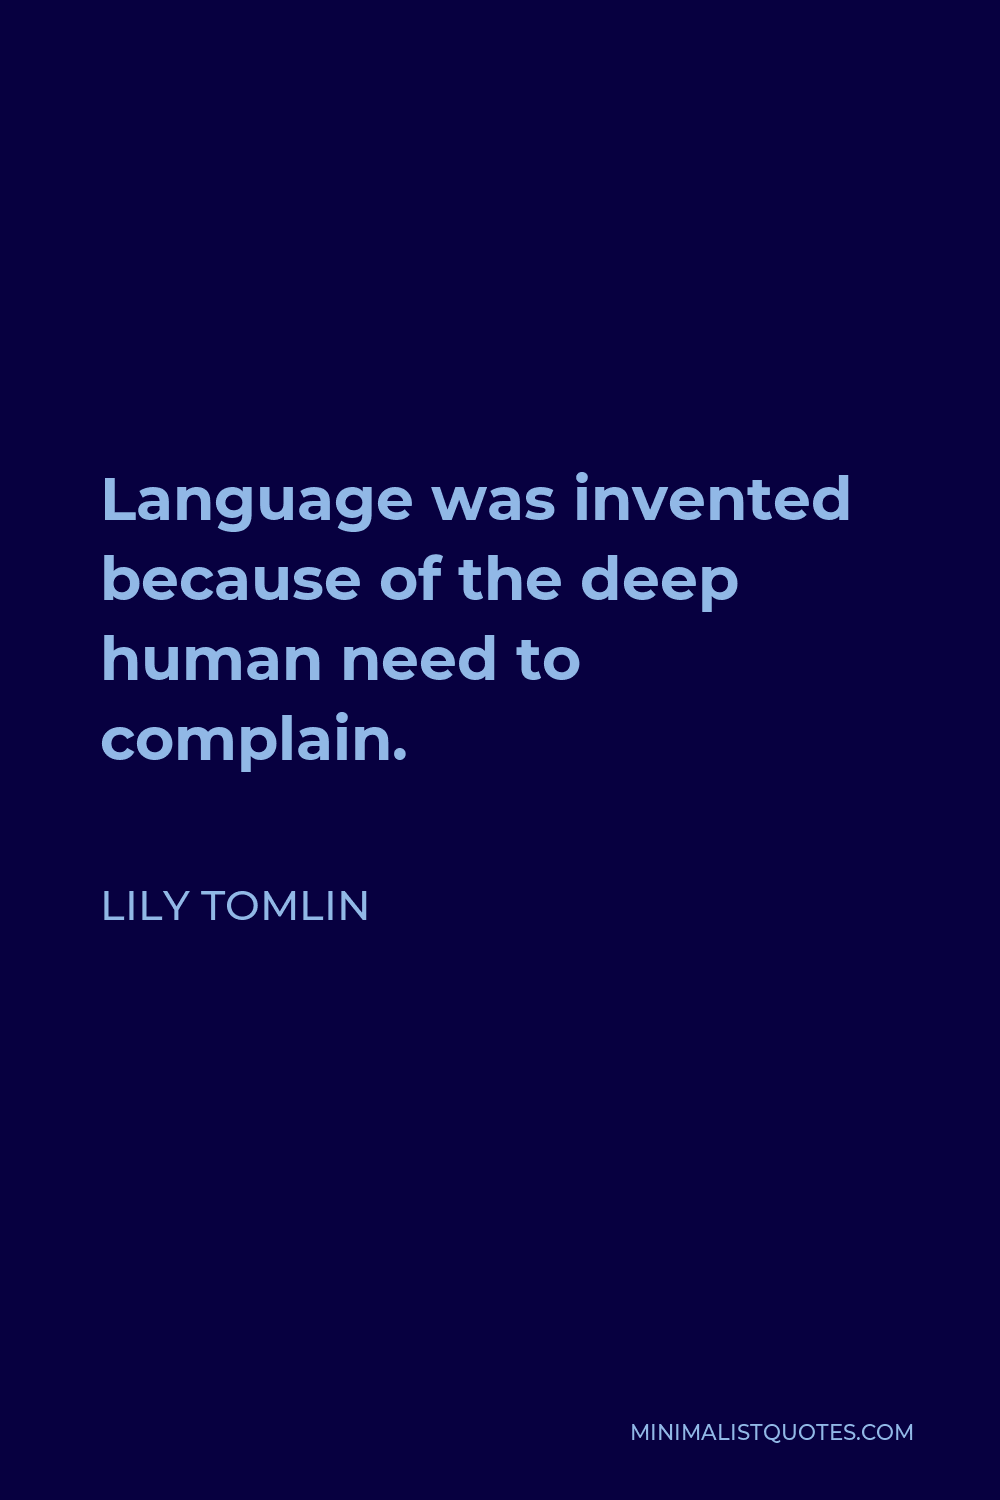 Lily Tomlin Quote - Language was invented because of the deep human need to complain.